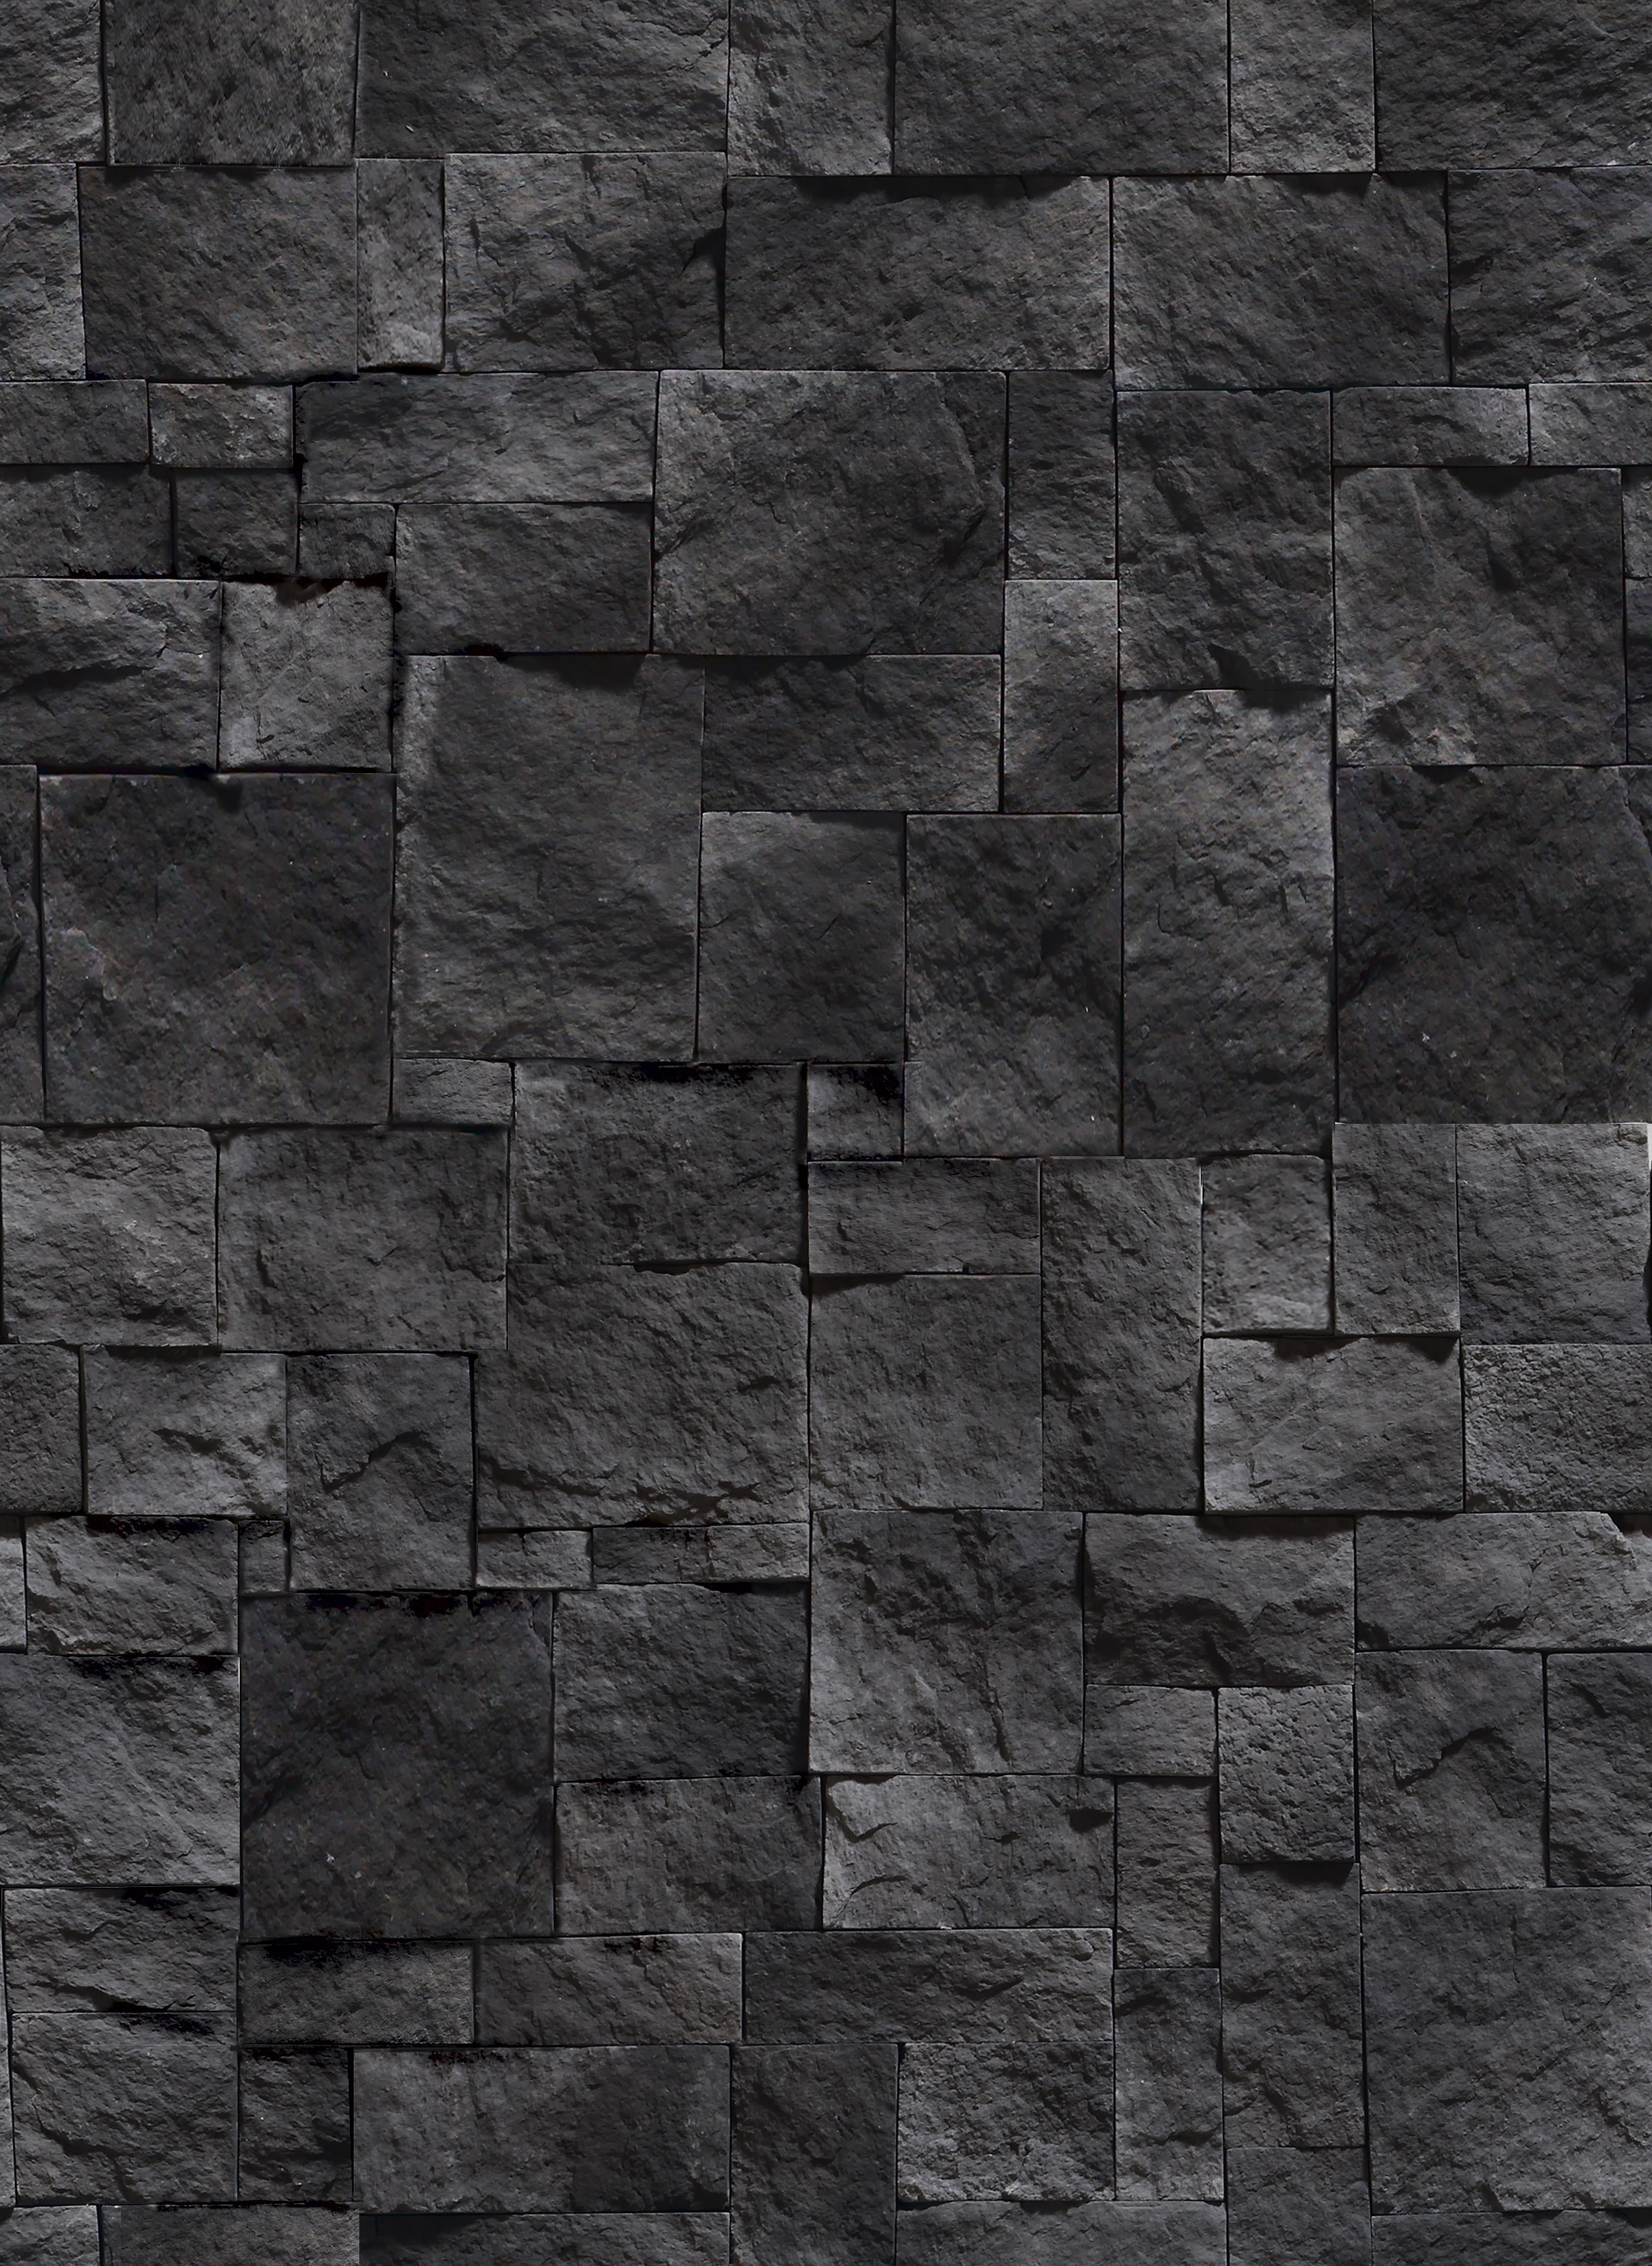 black stone, download photo, background, texture, stone texture